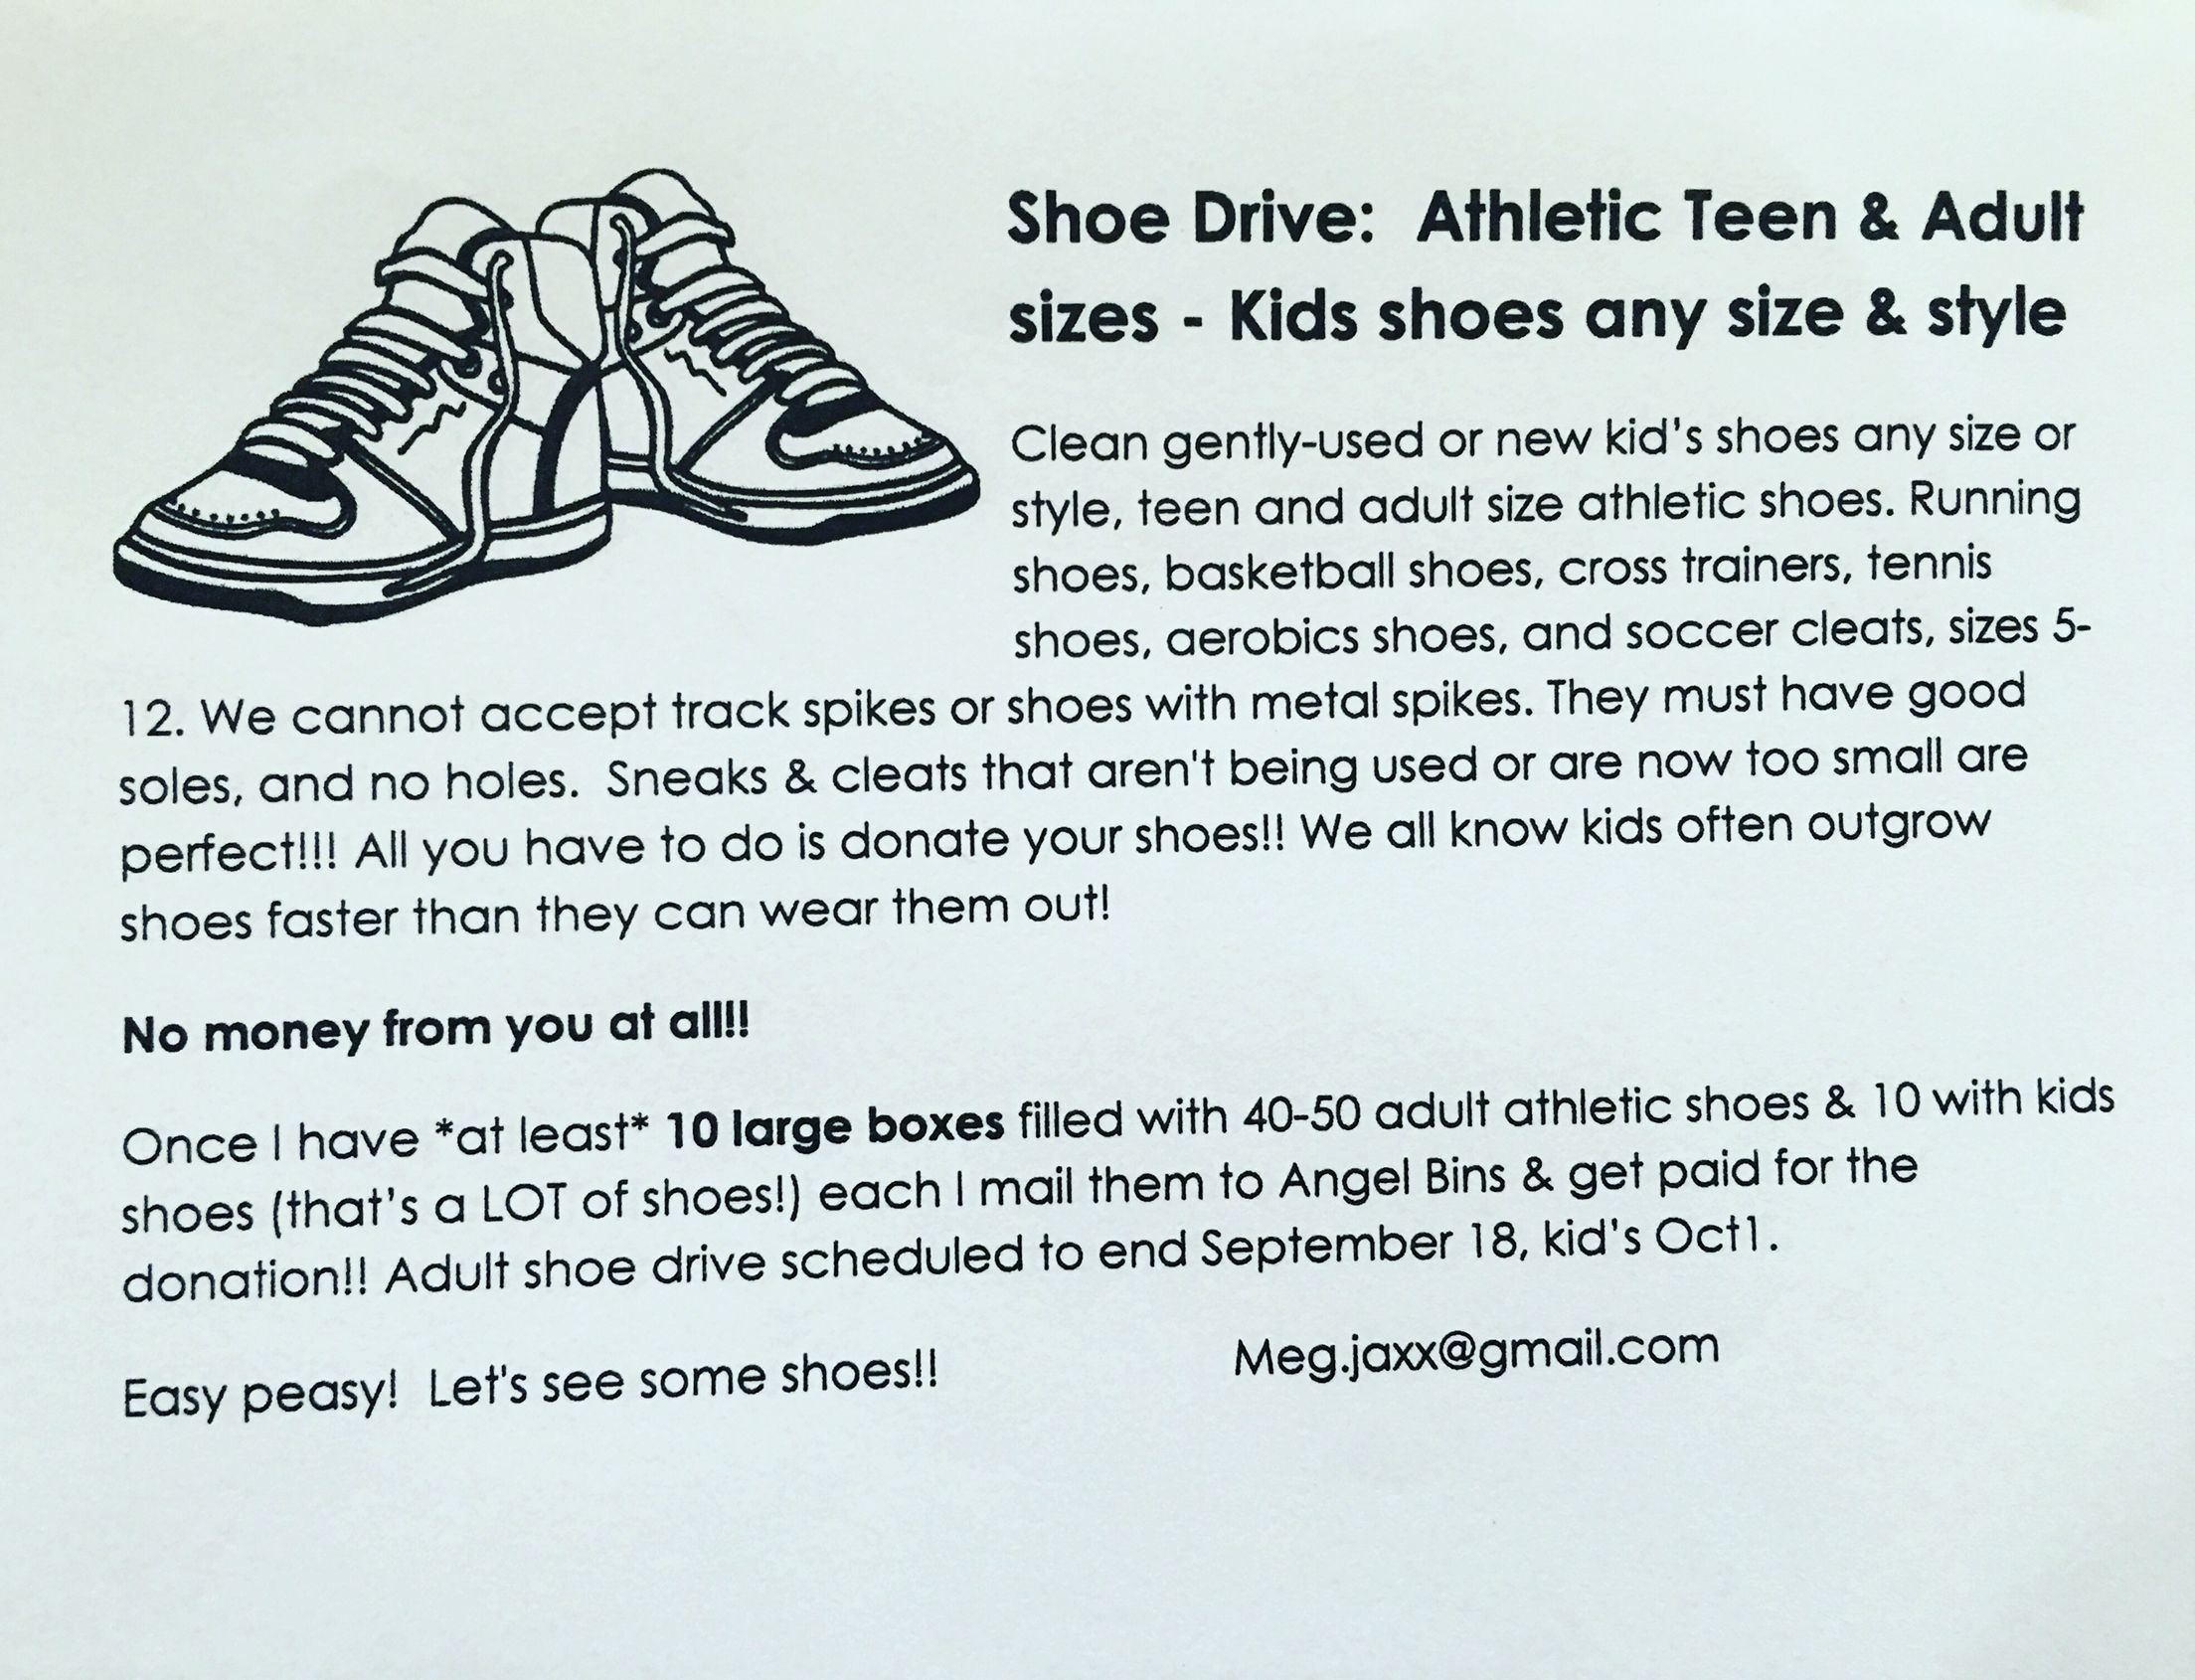 Shoe Drive Fundraiser To Beat Ms